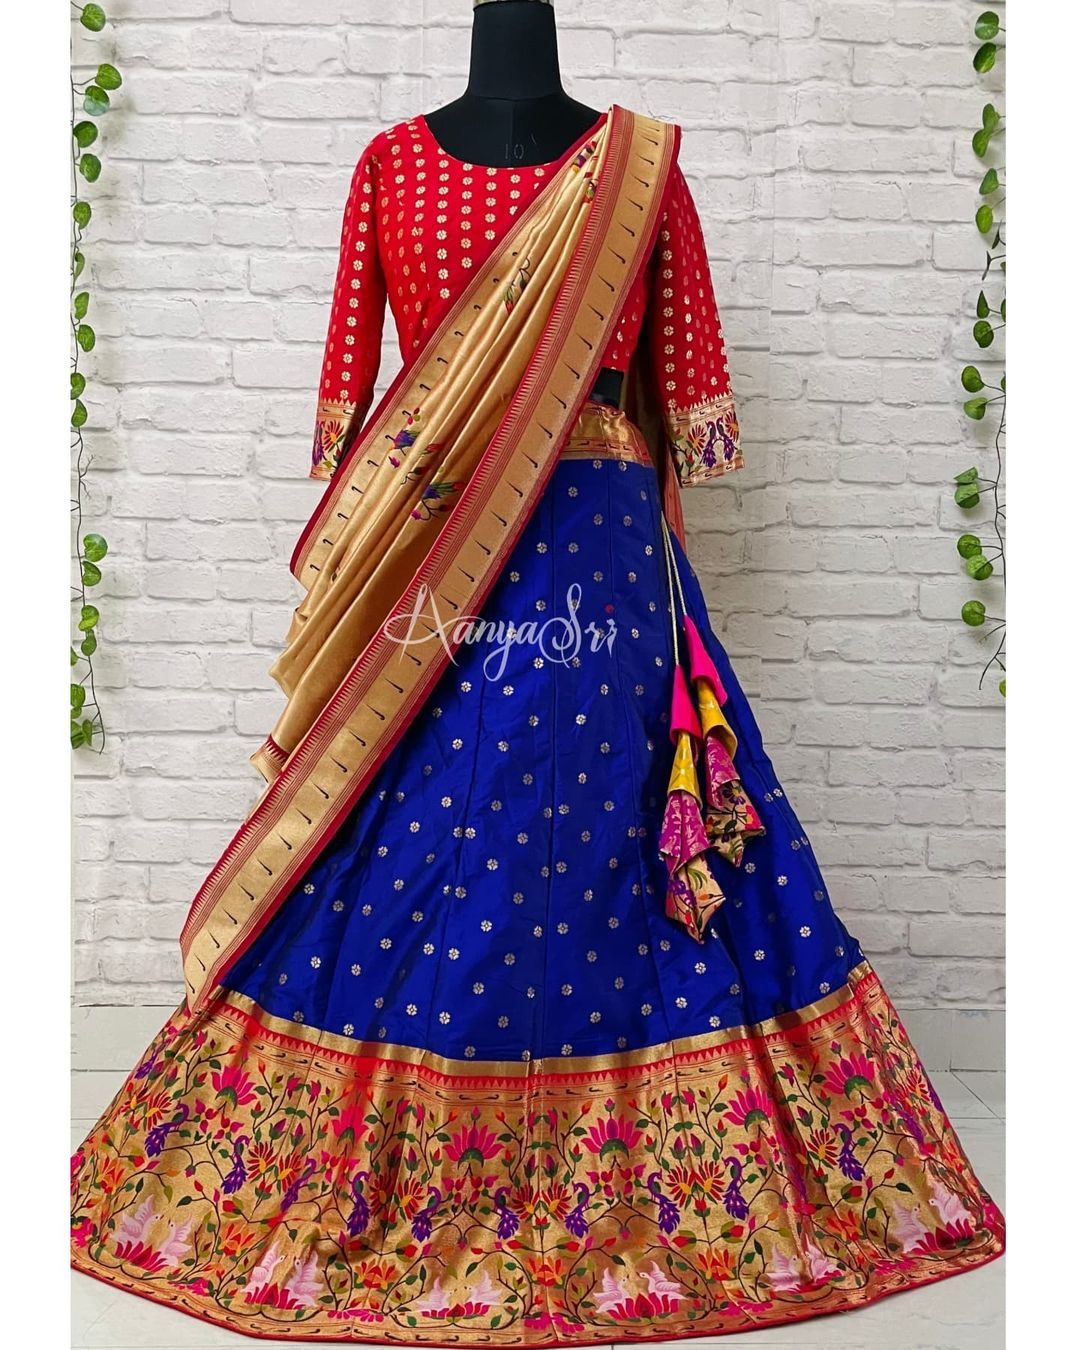 Blue traditional paithani lehenga with red blouse and gold paithani dupatta. This is perfect for weddings and looks grand & elegant !! 2021-10-12